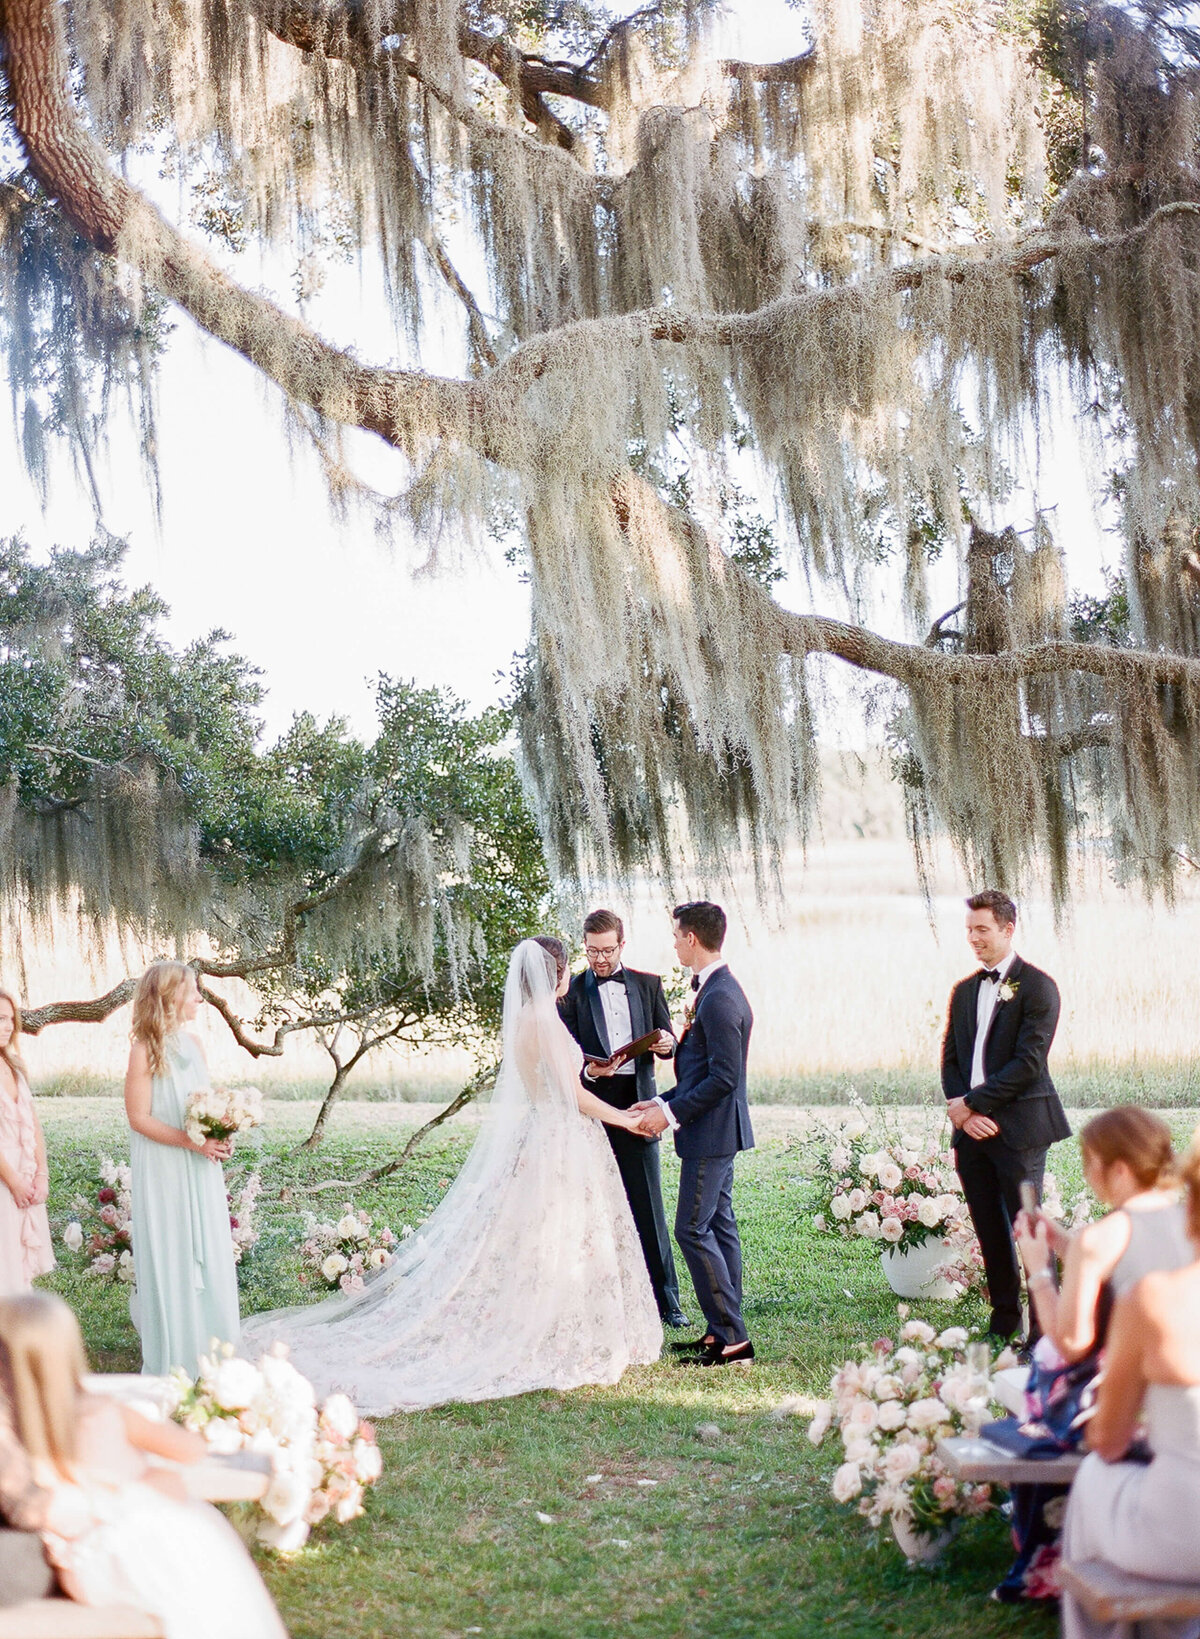 kiawah-river-wedding-clay-austin-photography-56